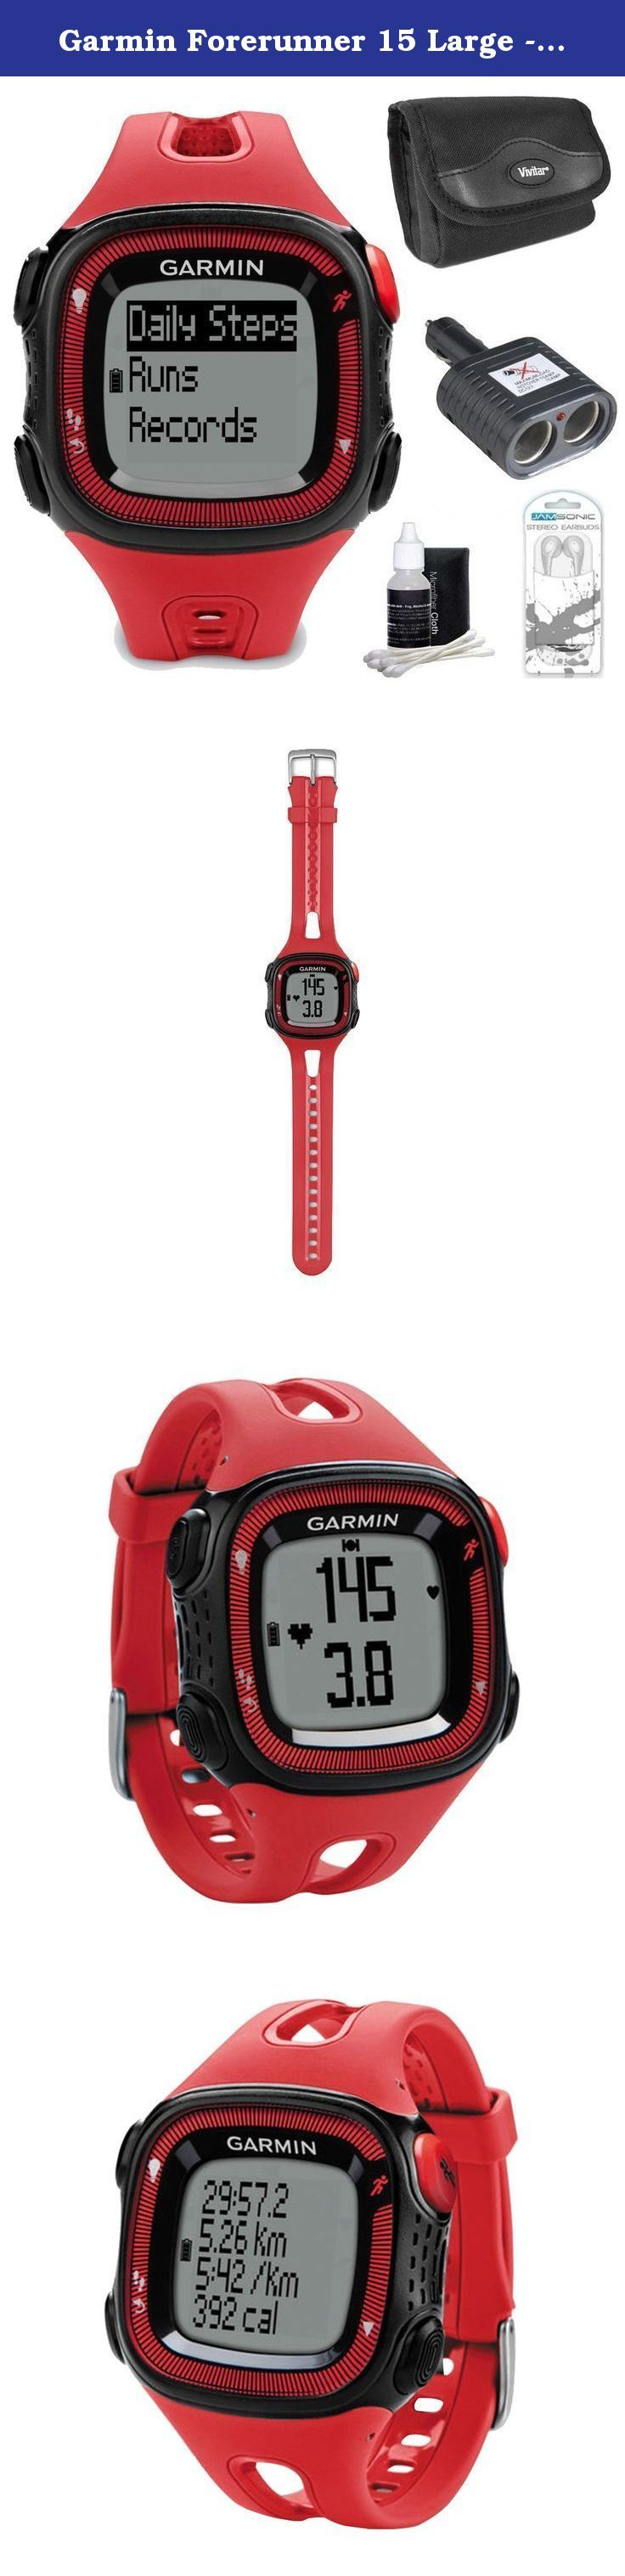 Garmin Forerunner 15 Large - Red/Black Bundle. Monitor Your Activity Between Runs Want to track the steps you take throughout your day when youre not working out? Now you can, without wearing a separate activity tracking device. Forerunner 15 counts your steps and the calories you burn all day. When you upload your data to Garmin Connect, this allows you to monitor your progress toward fitness goals and see overall fitness trends. Forerunner 15 also reminds you when its time to move if…